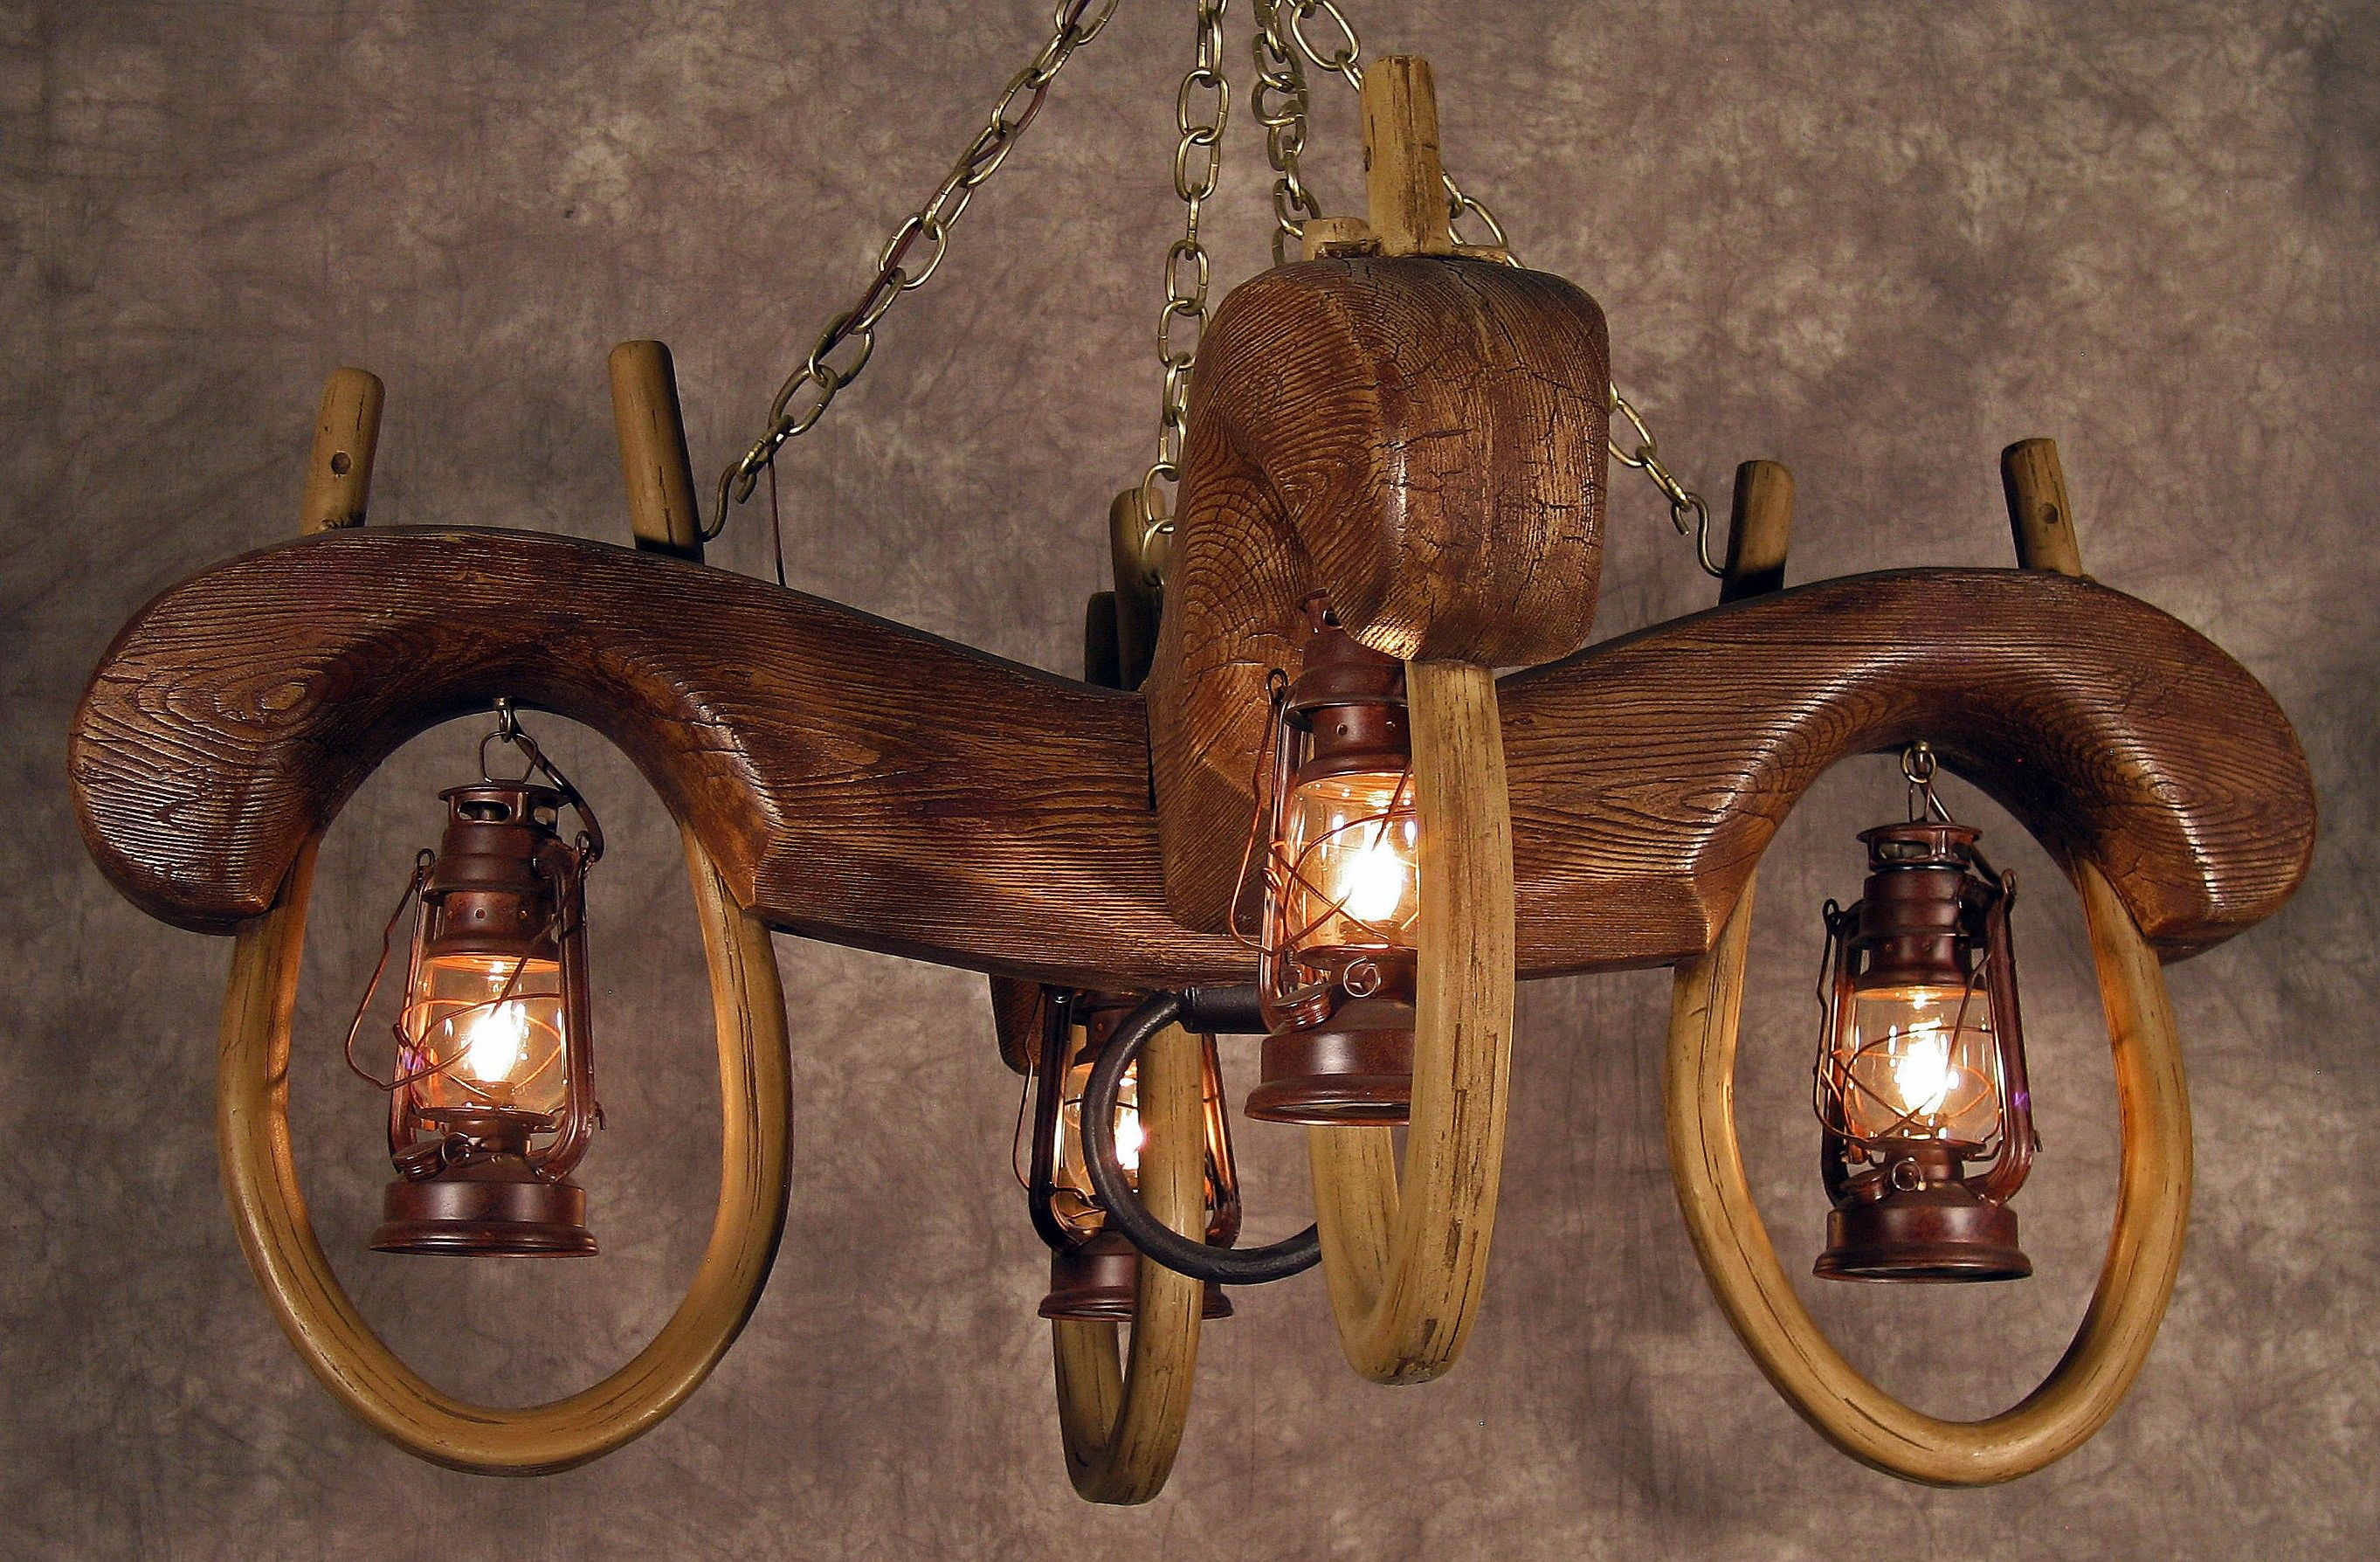 Remarkable western ceiling light fixtures contemporary best double ox yoke 4 lantern chandelier rustic ox yoke chandeliers western arubaitofo Image collections